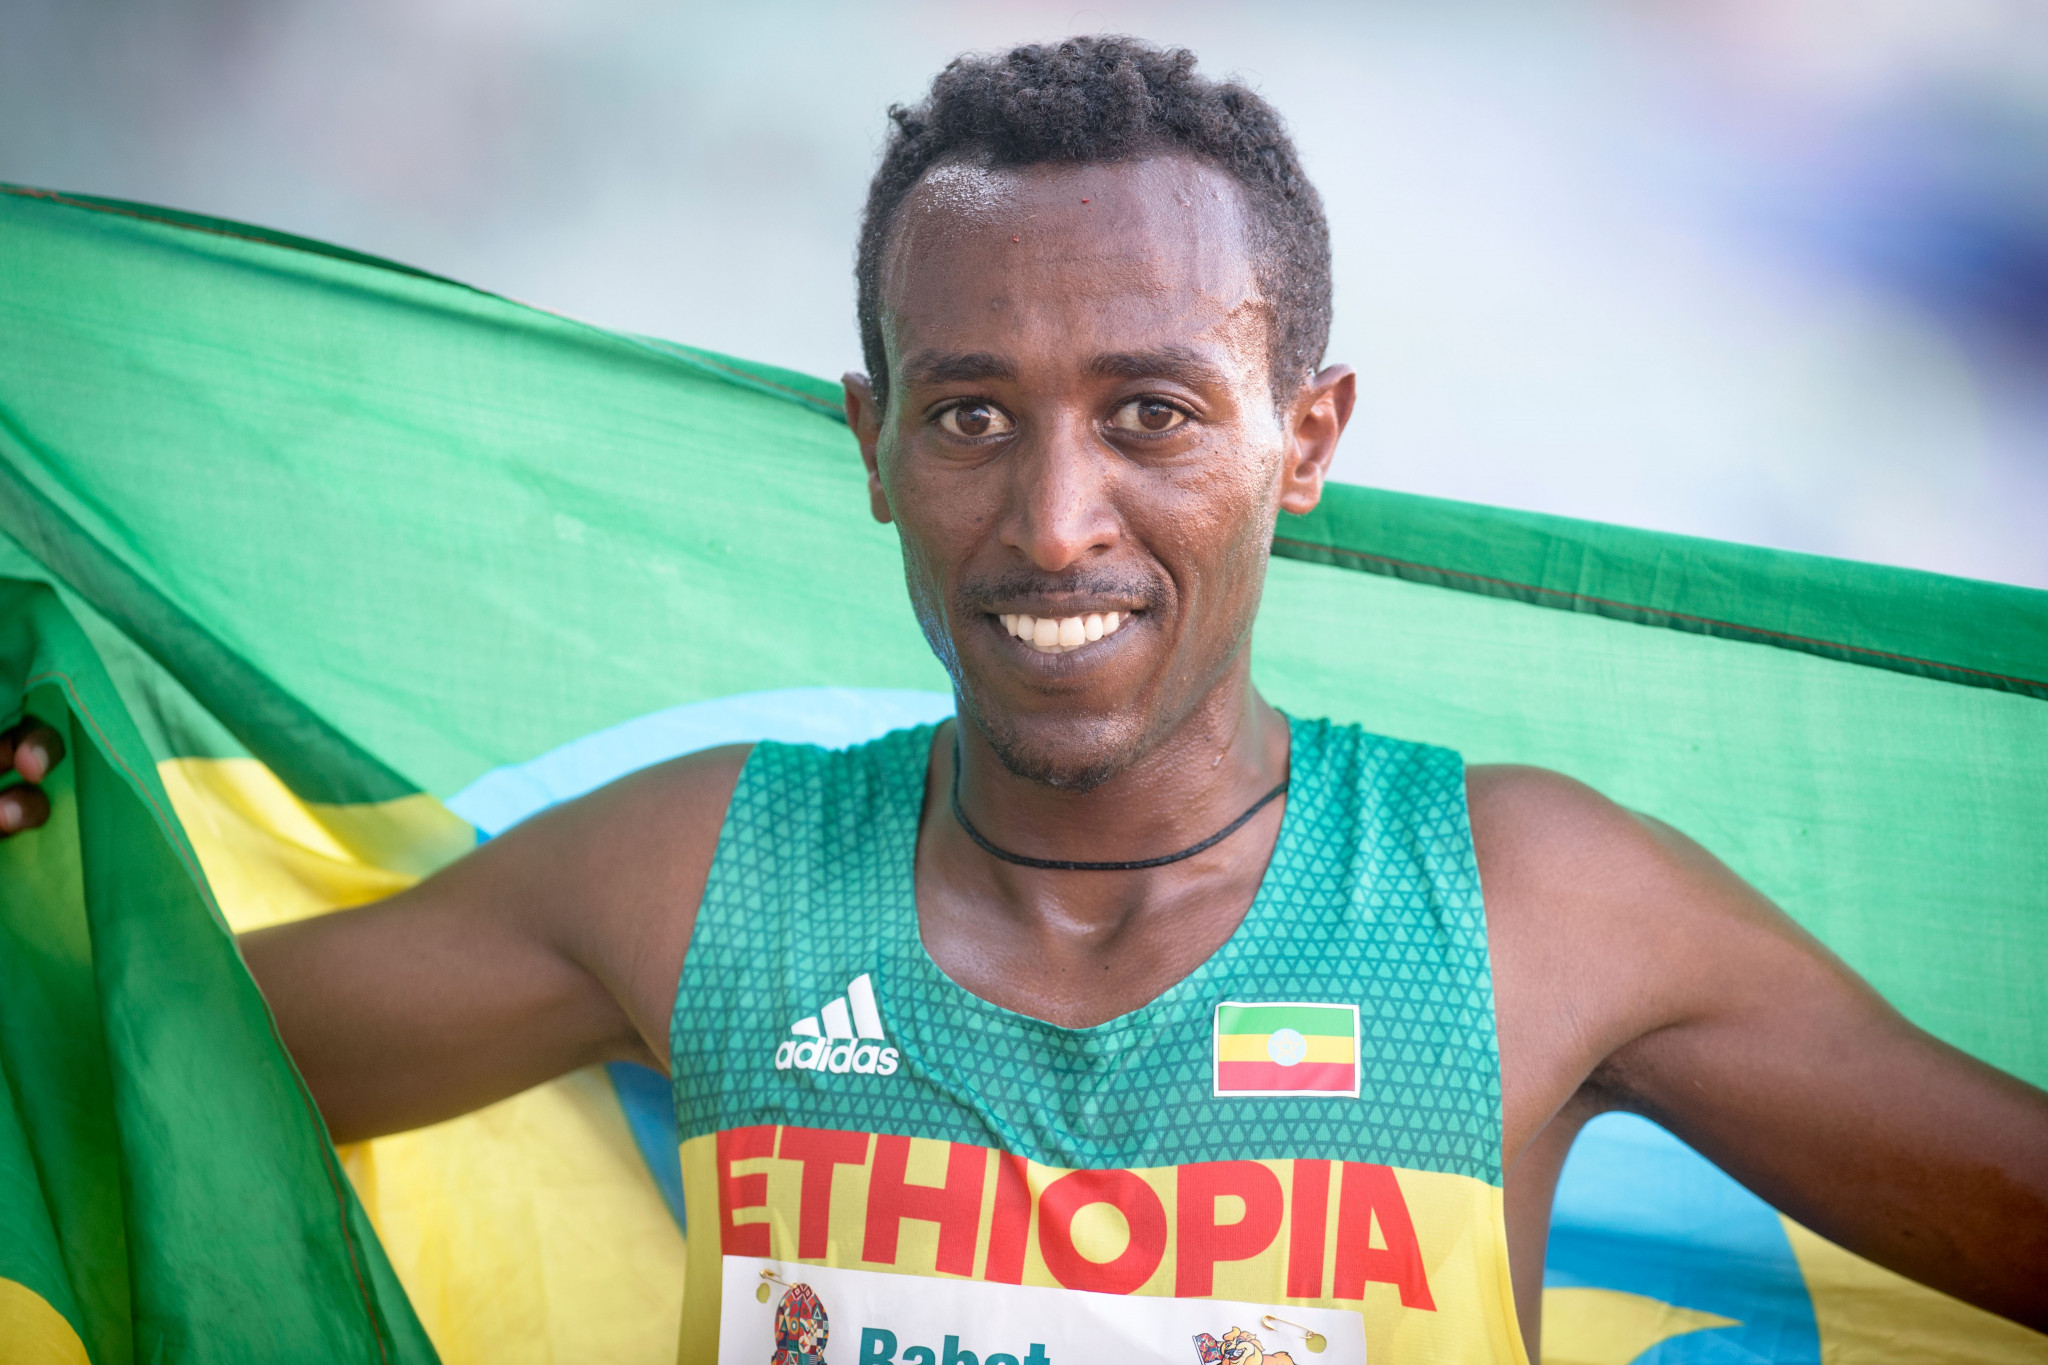 Ethiopia's Berehanu Tsegu celebrates winning the 10,000m af the African Games in Rabat in August - a title he is now set to be stripped of after testing positive ©Getty Images